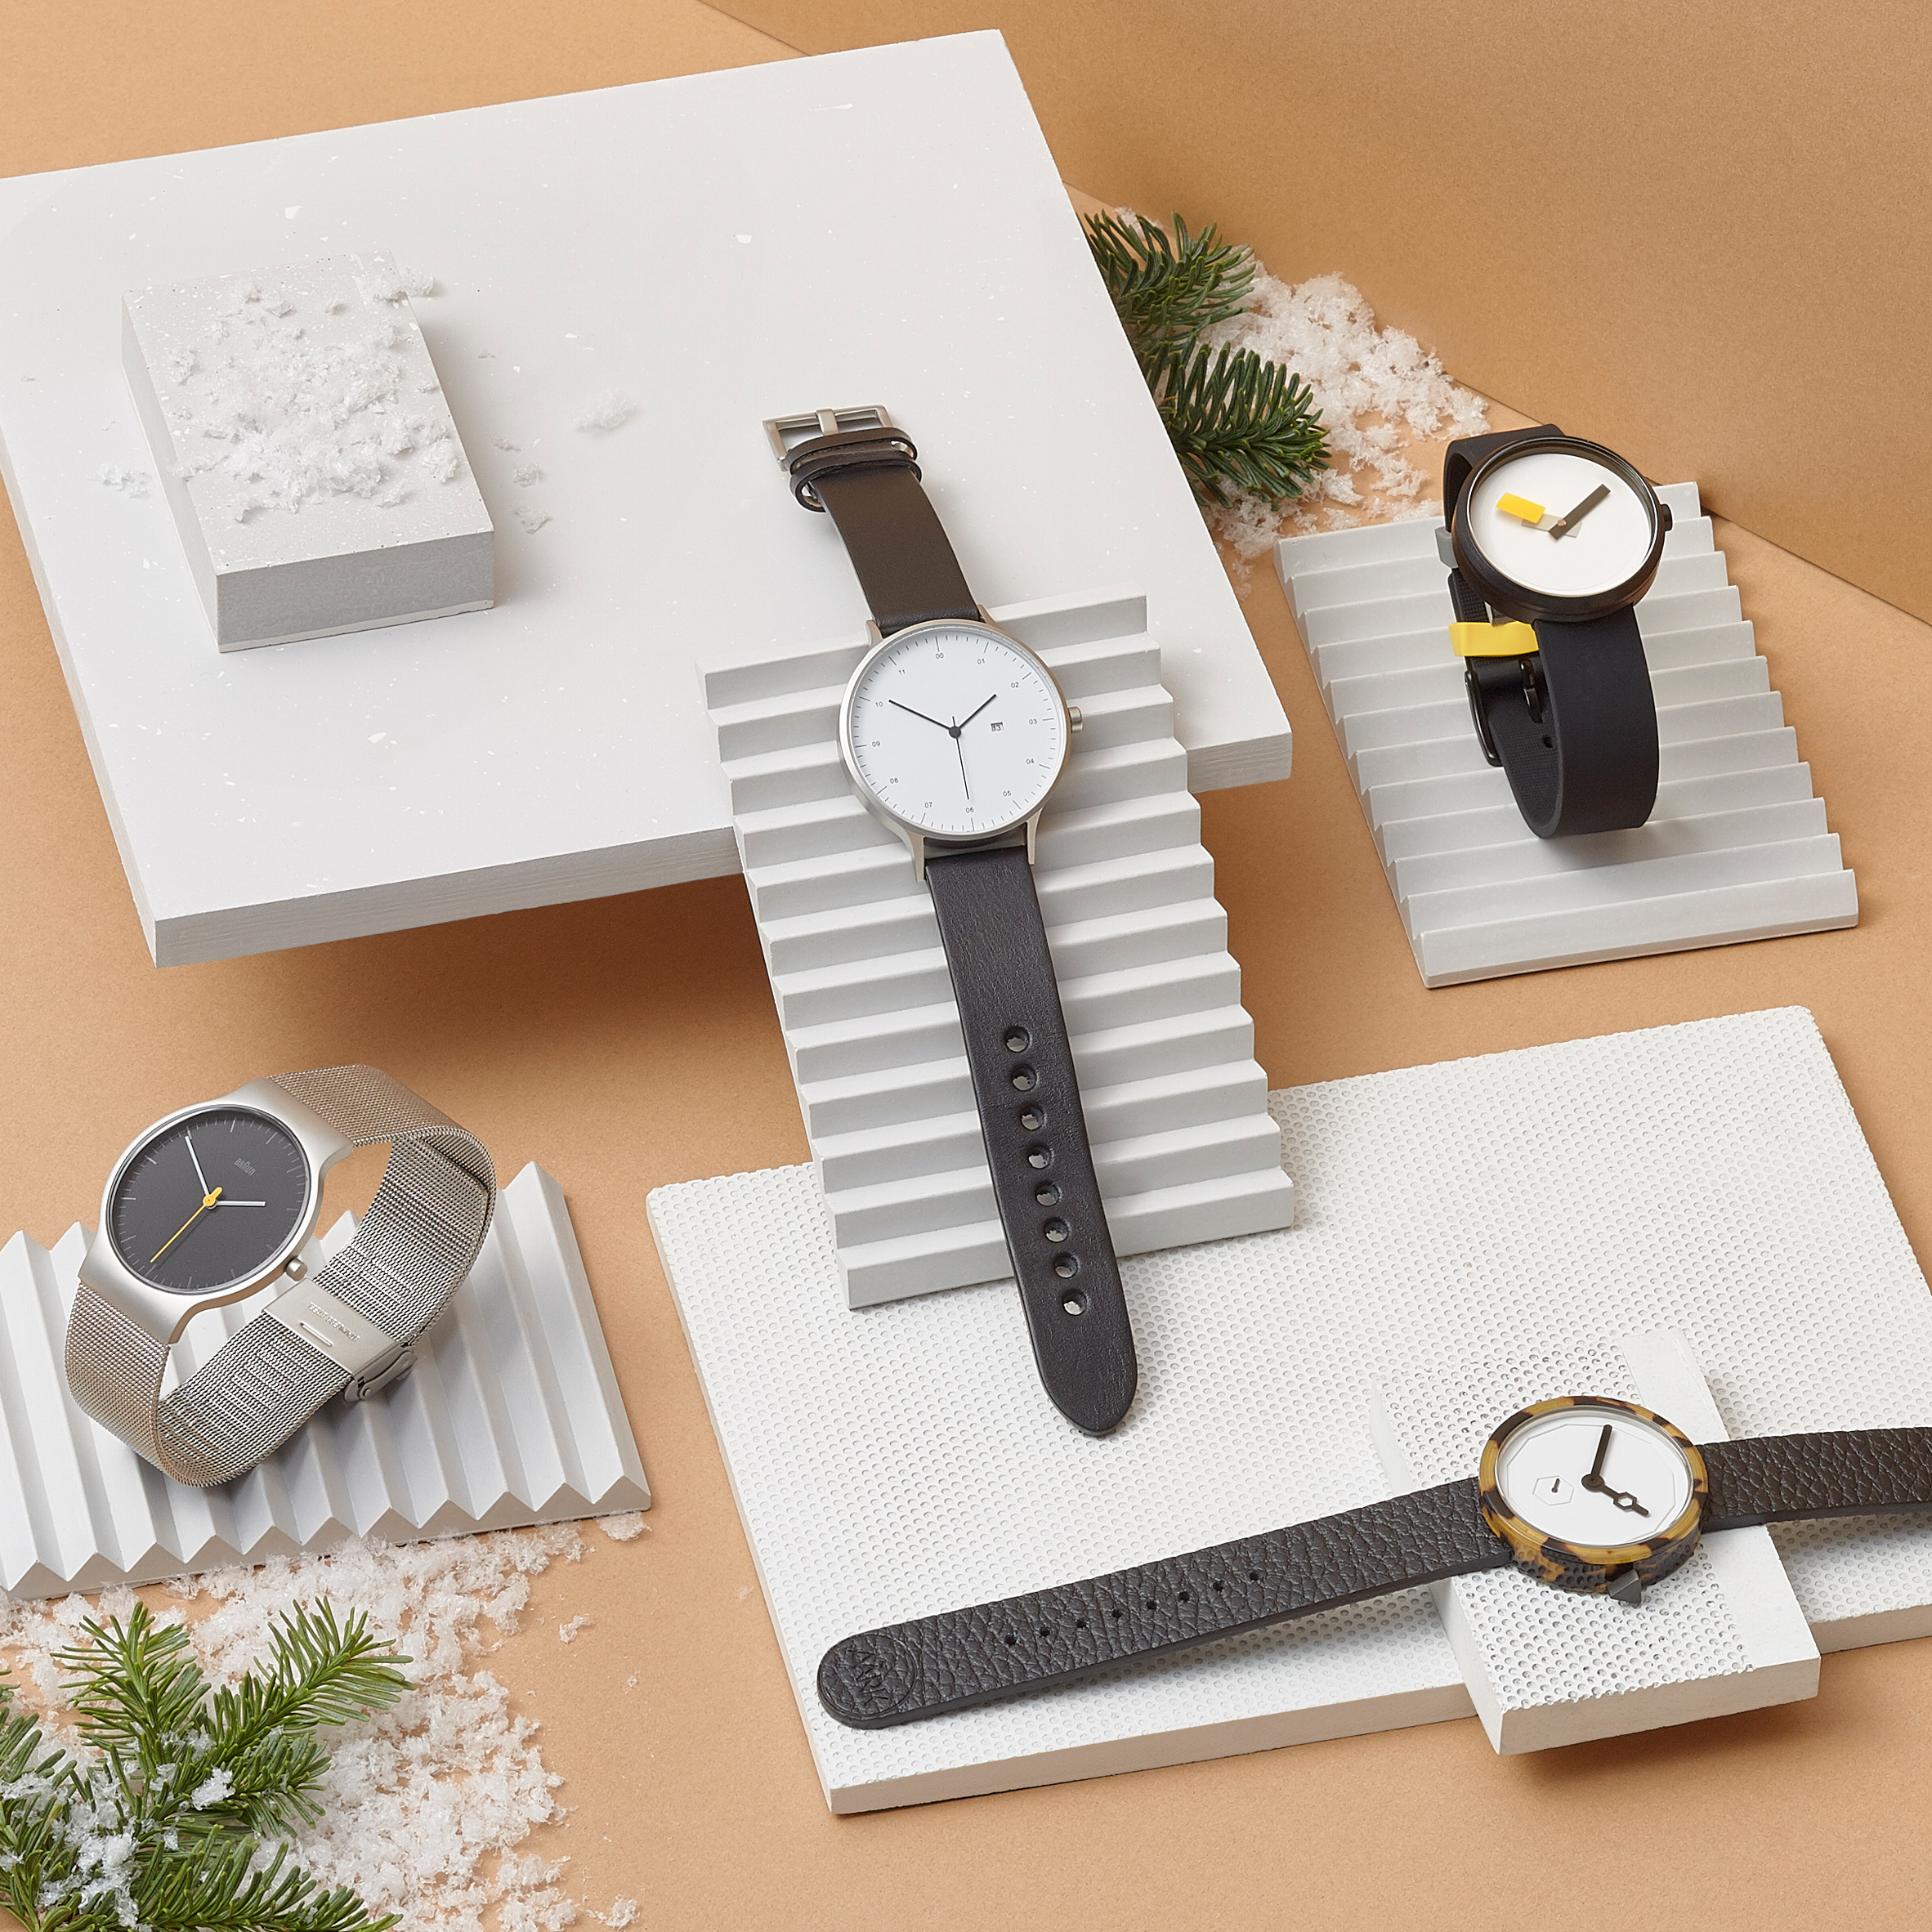 Subscribe to Dezeen Watch Store for exclusive Black Friday deals